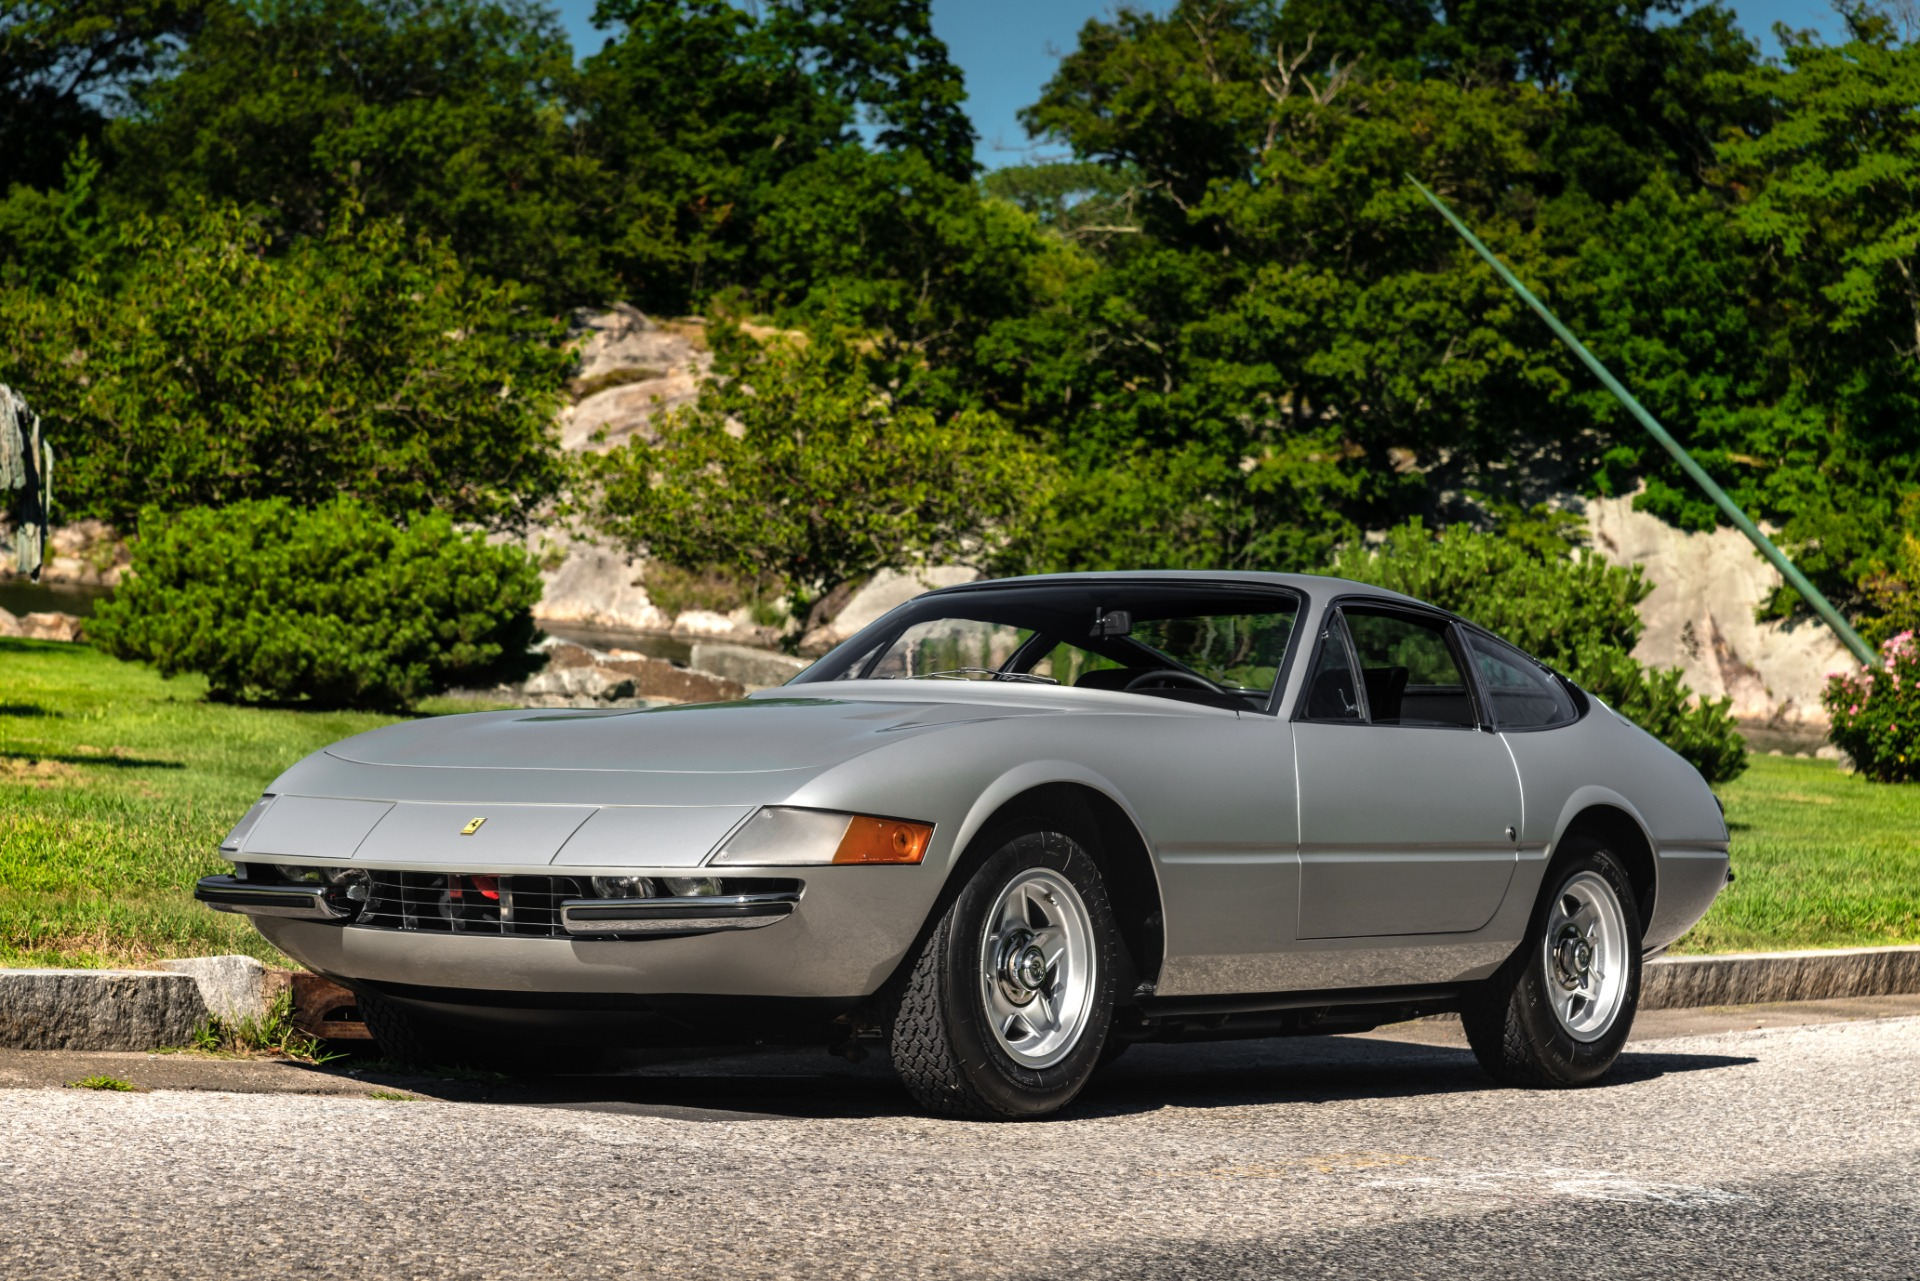 Used 1971 Ferrari 365 GTB/4 Daytona for sale Sold at Bentley Greenwich in Greenwich CT 06830 1